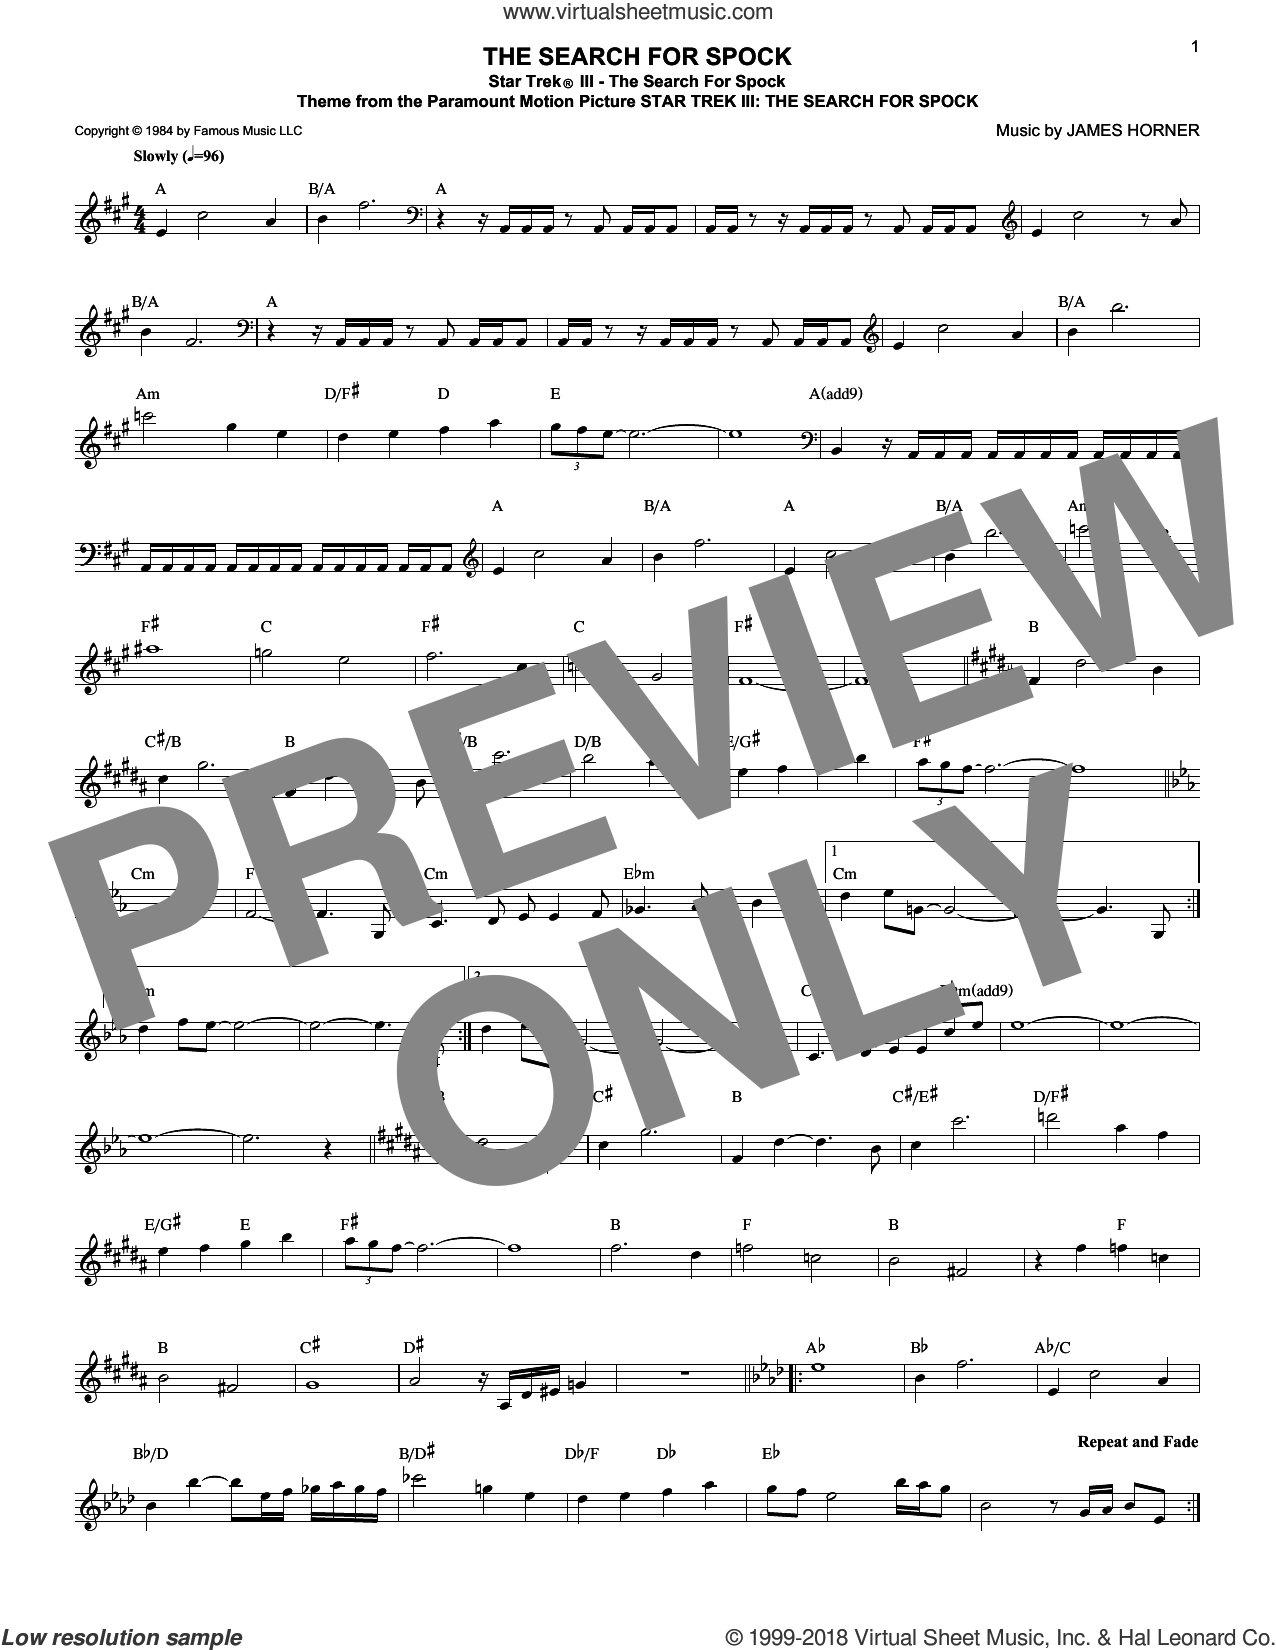 Star Trek III - The Search For Spock sheet music for voice and other instruments (fake book) by James Horner, intermediate skill level